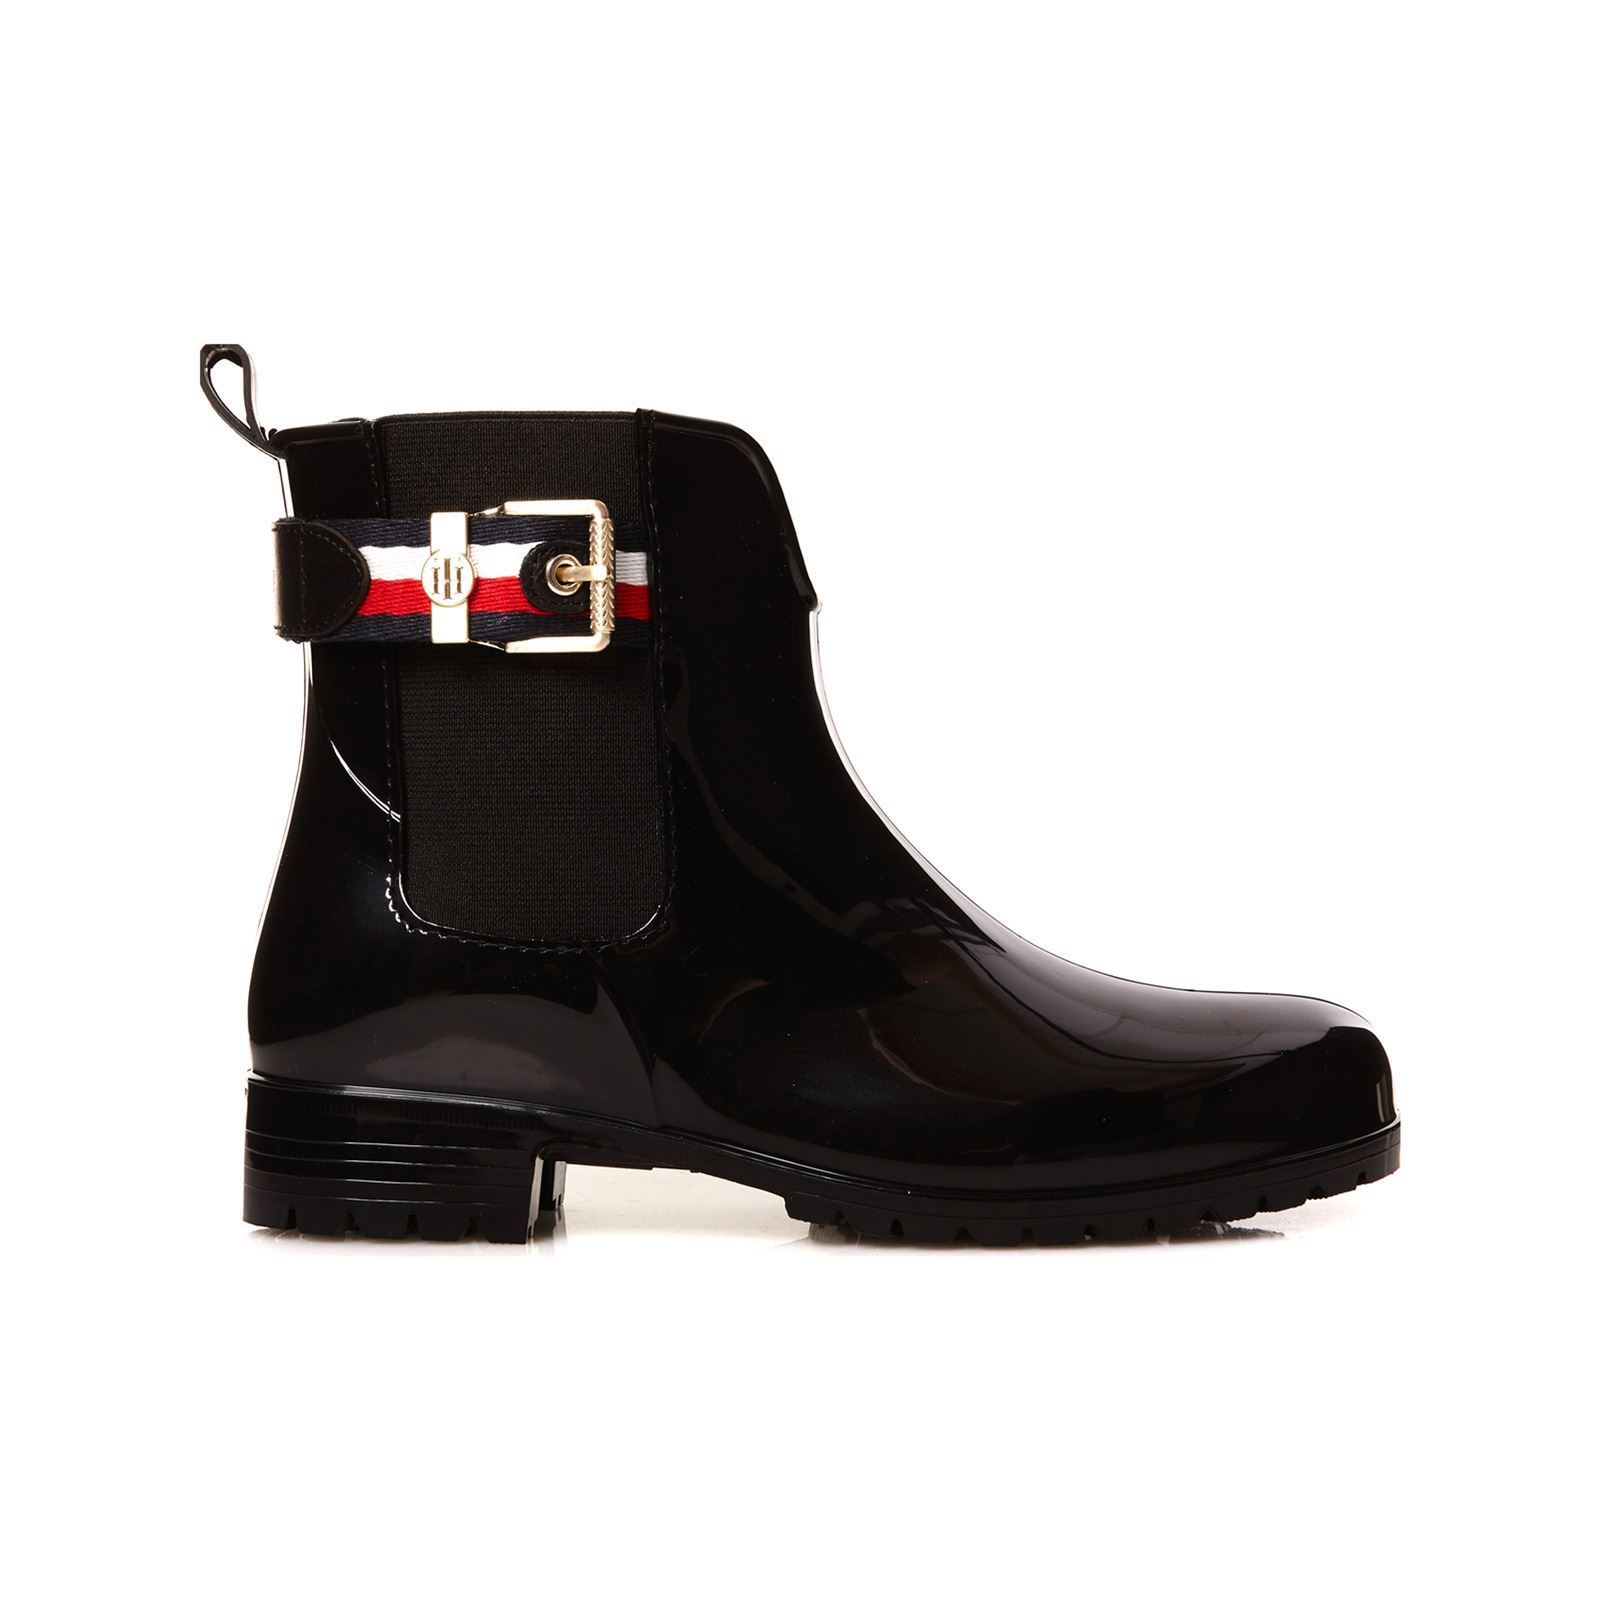 Tommy Hilfiger Bottines - noir   BrandAlley 1eca8fd45f4f